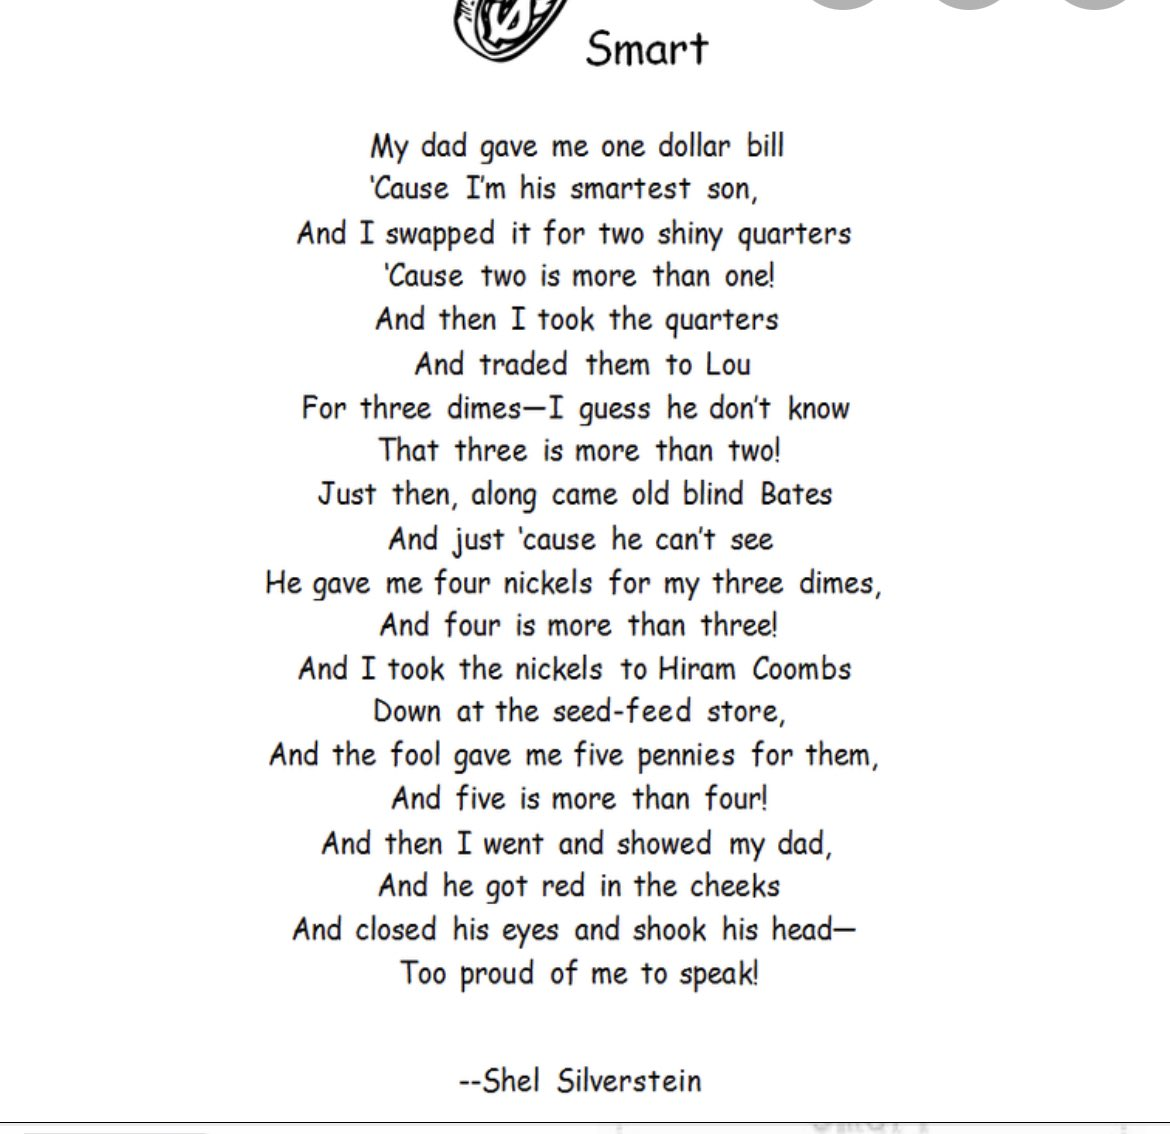 For rhyming week we read Shel Silverstein's poem Smart & reviewed trading + currency for economics. Celebrating @ShelSilverstein #poetry #rhyme  #math #literacy @RichfieldElem https://t.co/vsc6M5Tvq9 https://t.co/LWPy7QnW5c